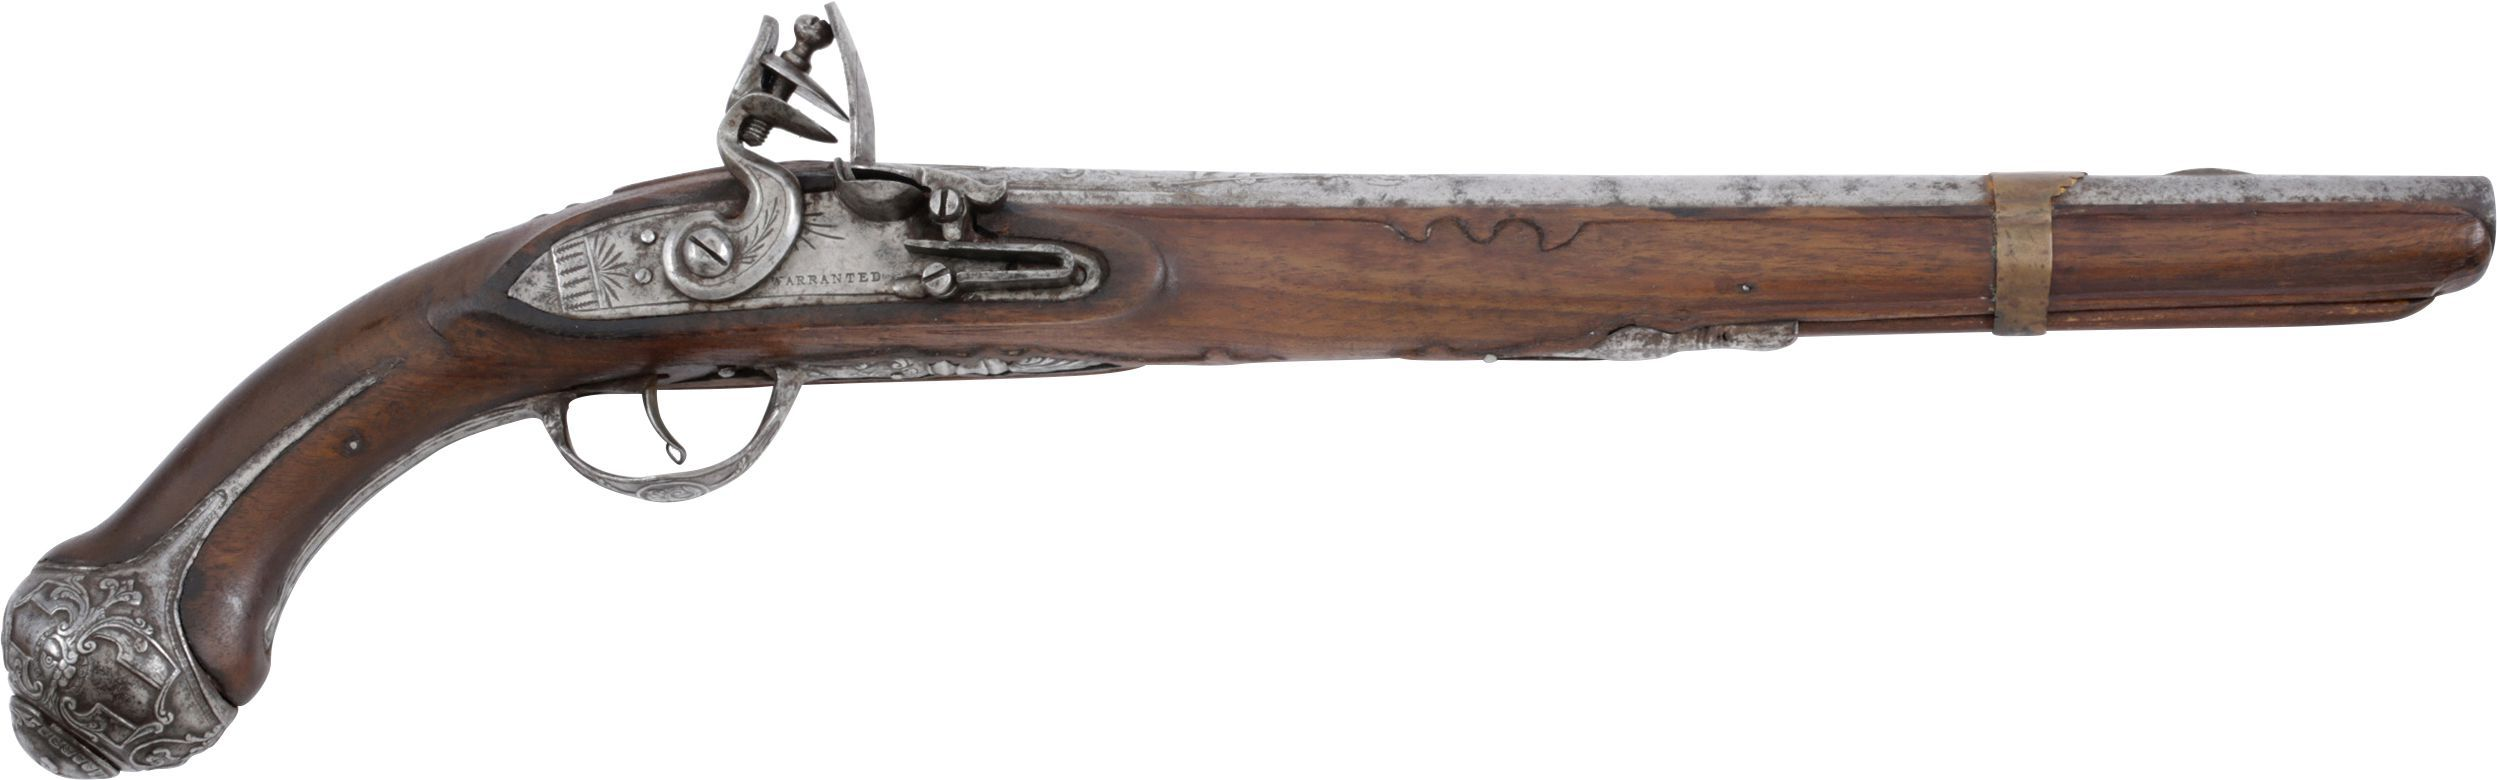 English Flintlock Pistol Made For The Turkish Market - Product